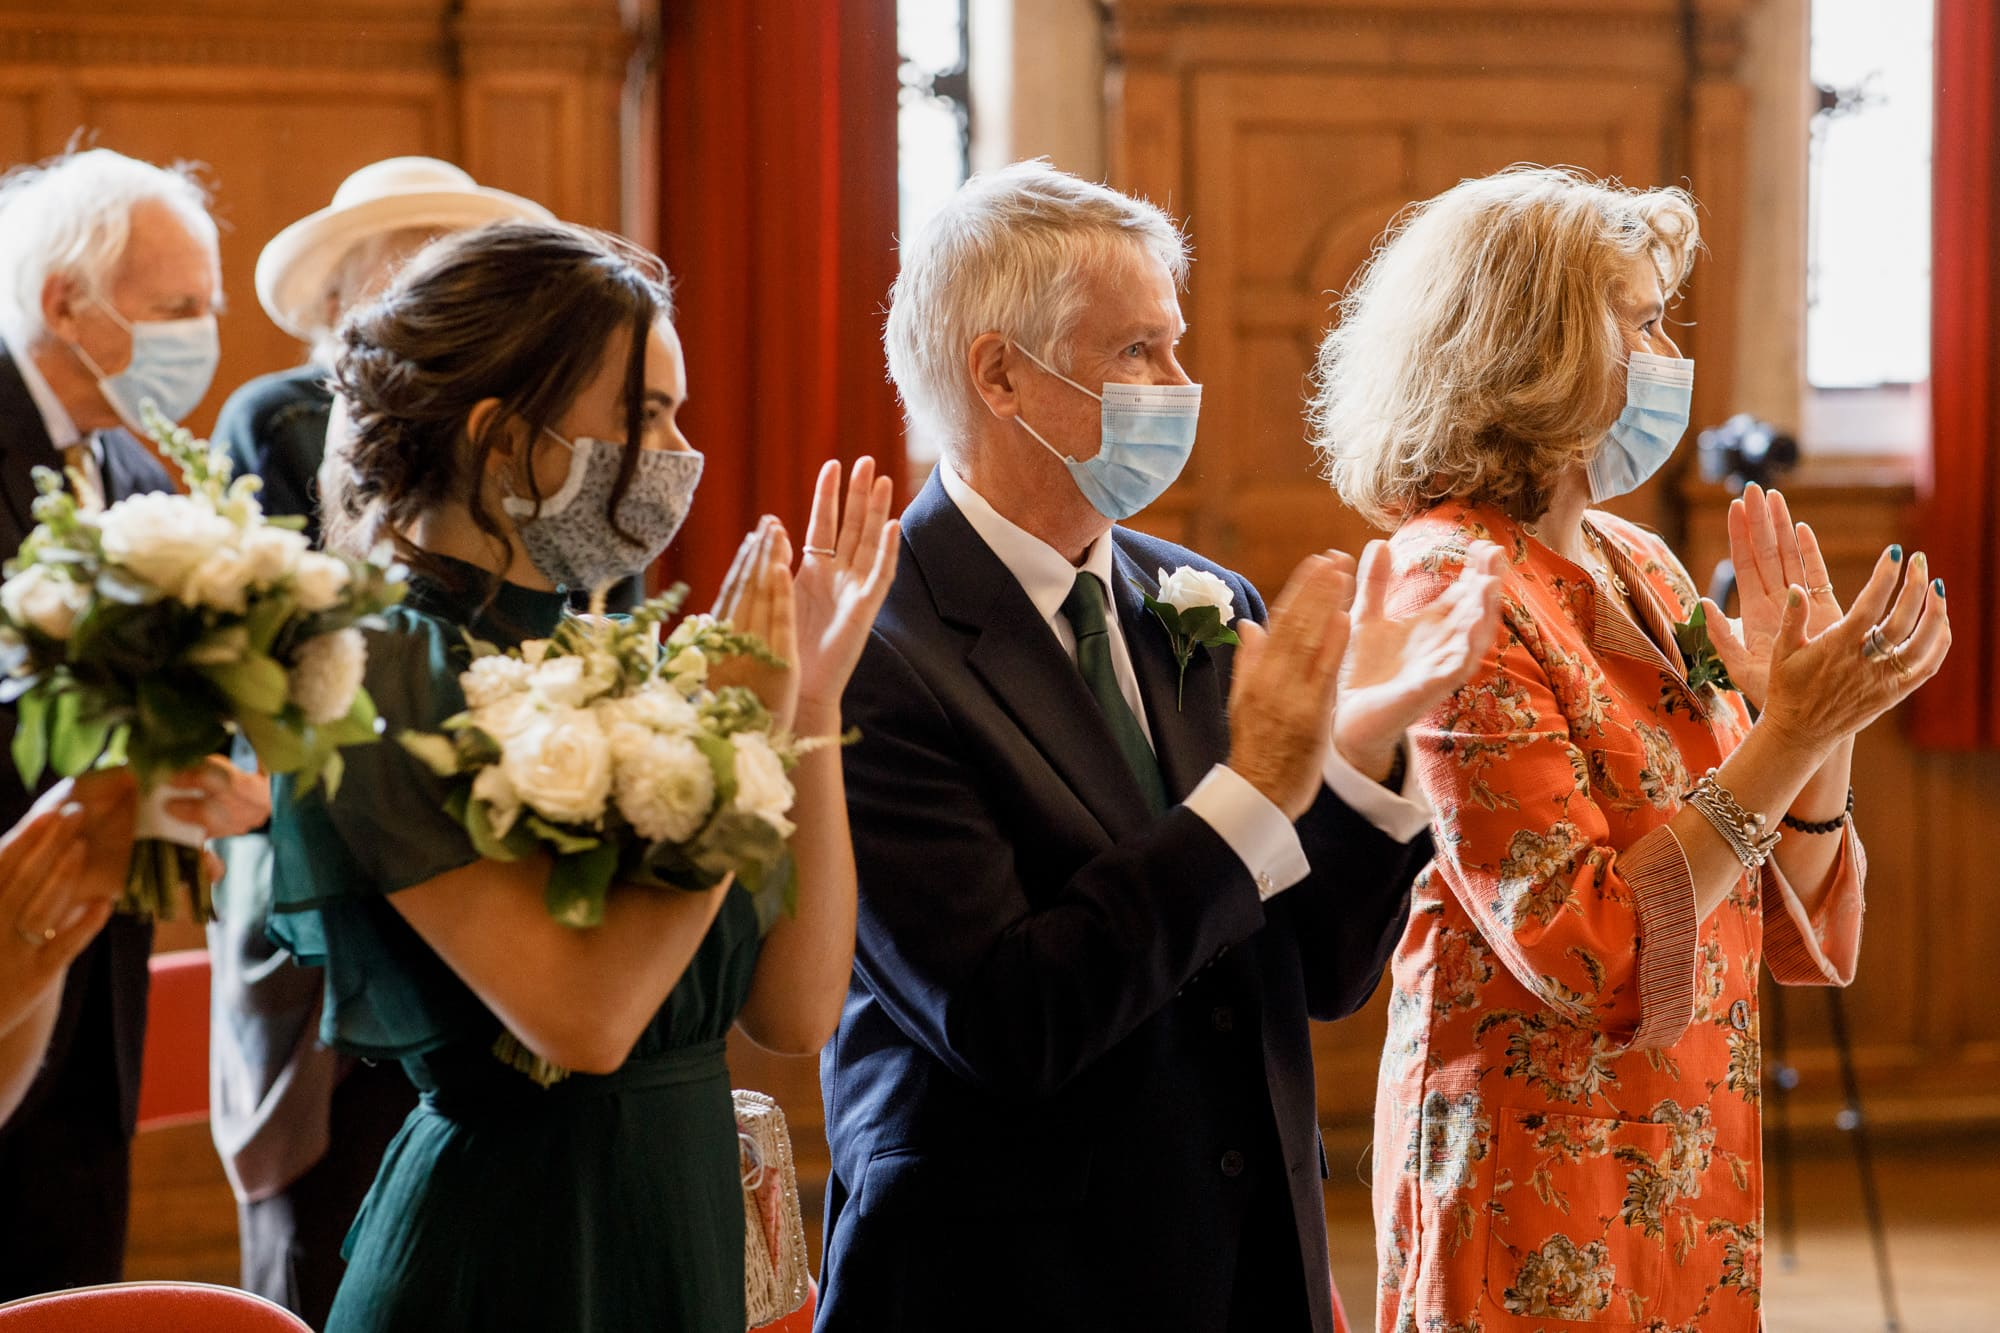 covid wedding with guests wearing masks